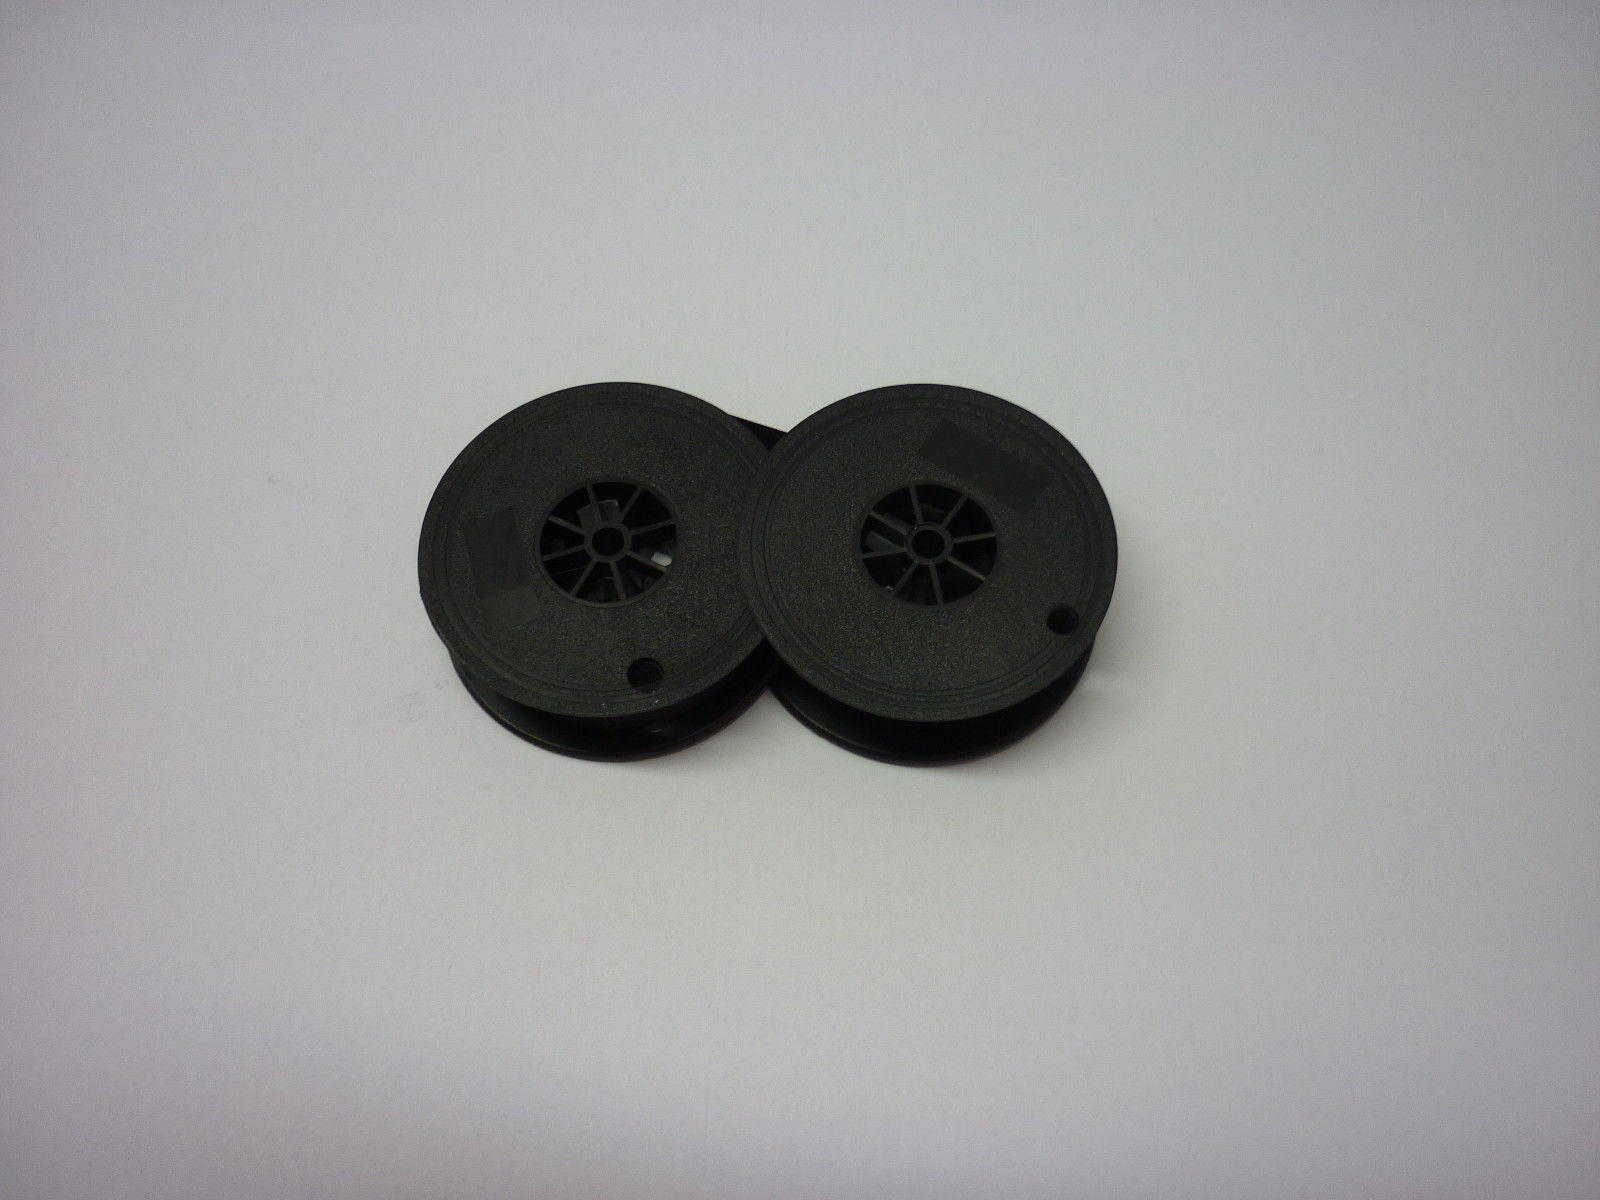 Olivetti Lettera 37 Typewriter Ribbon Black Twin Spool